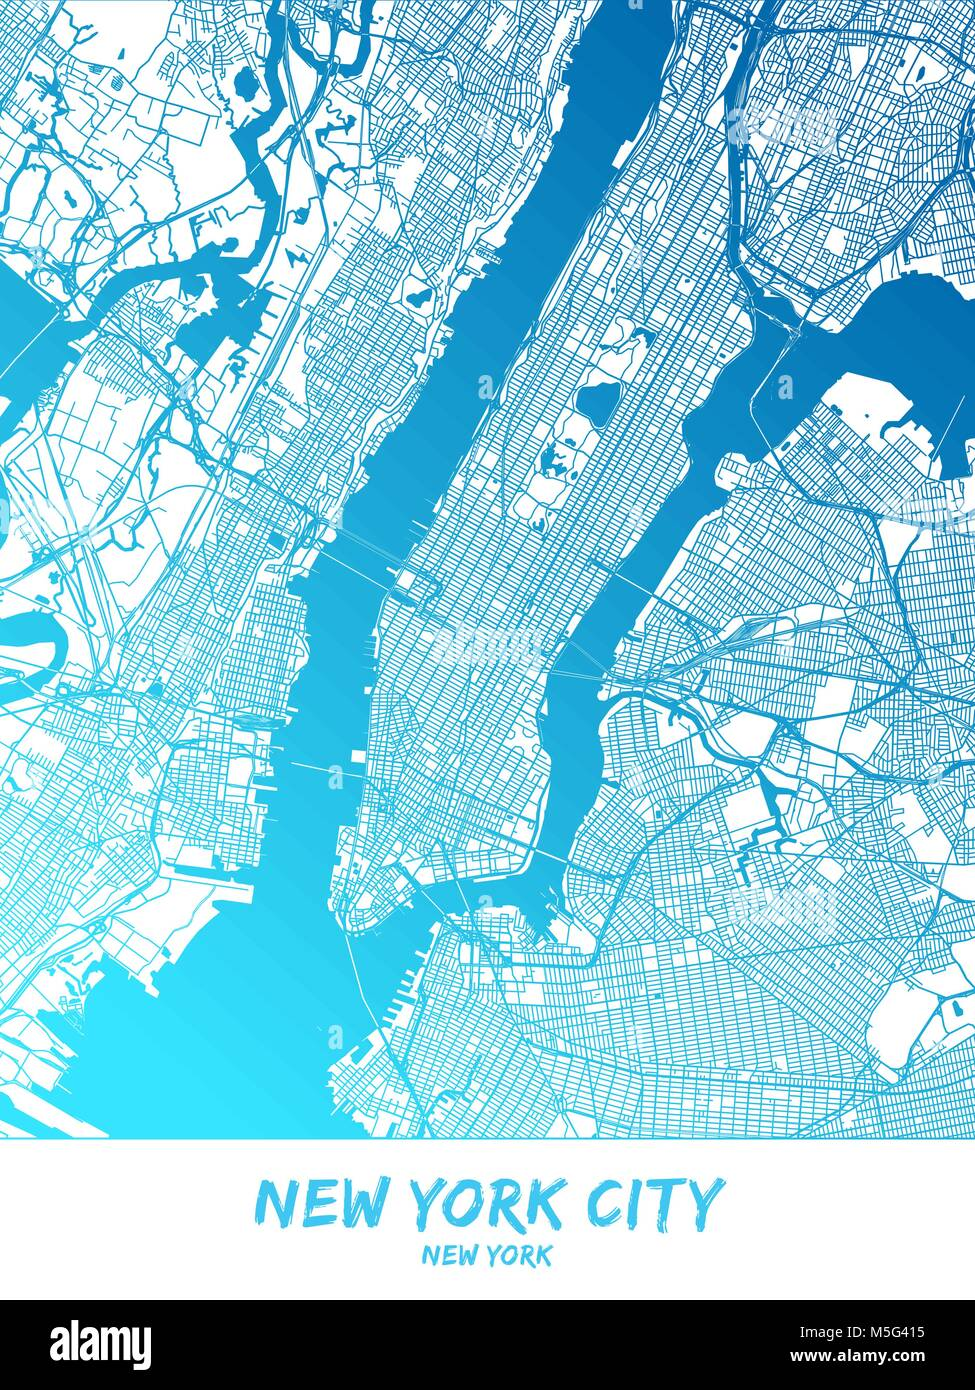 New York City downtown and surroundings Map in blue shaded version